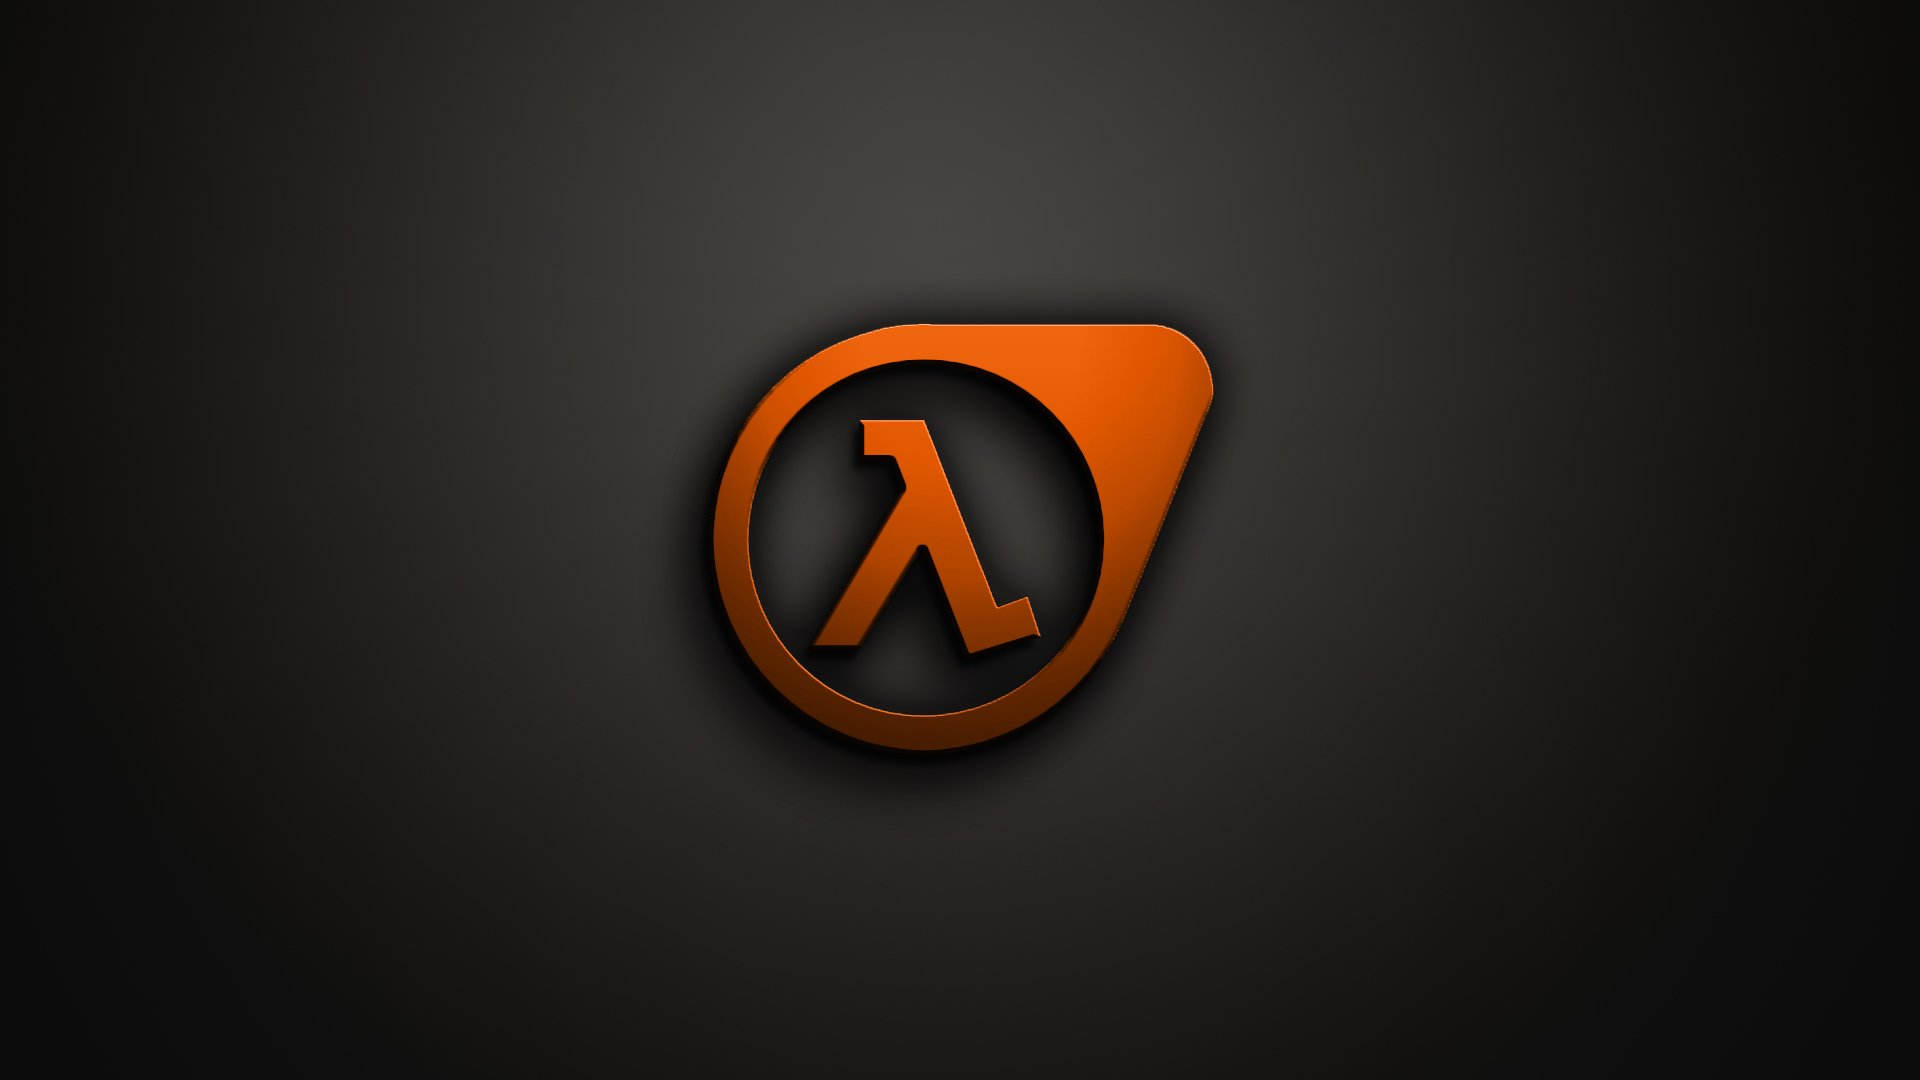 Alienware Iphone Wallpaper Half Life 3 Full Hd Wallpaper And Background 1920x1080